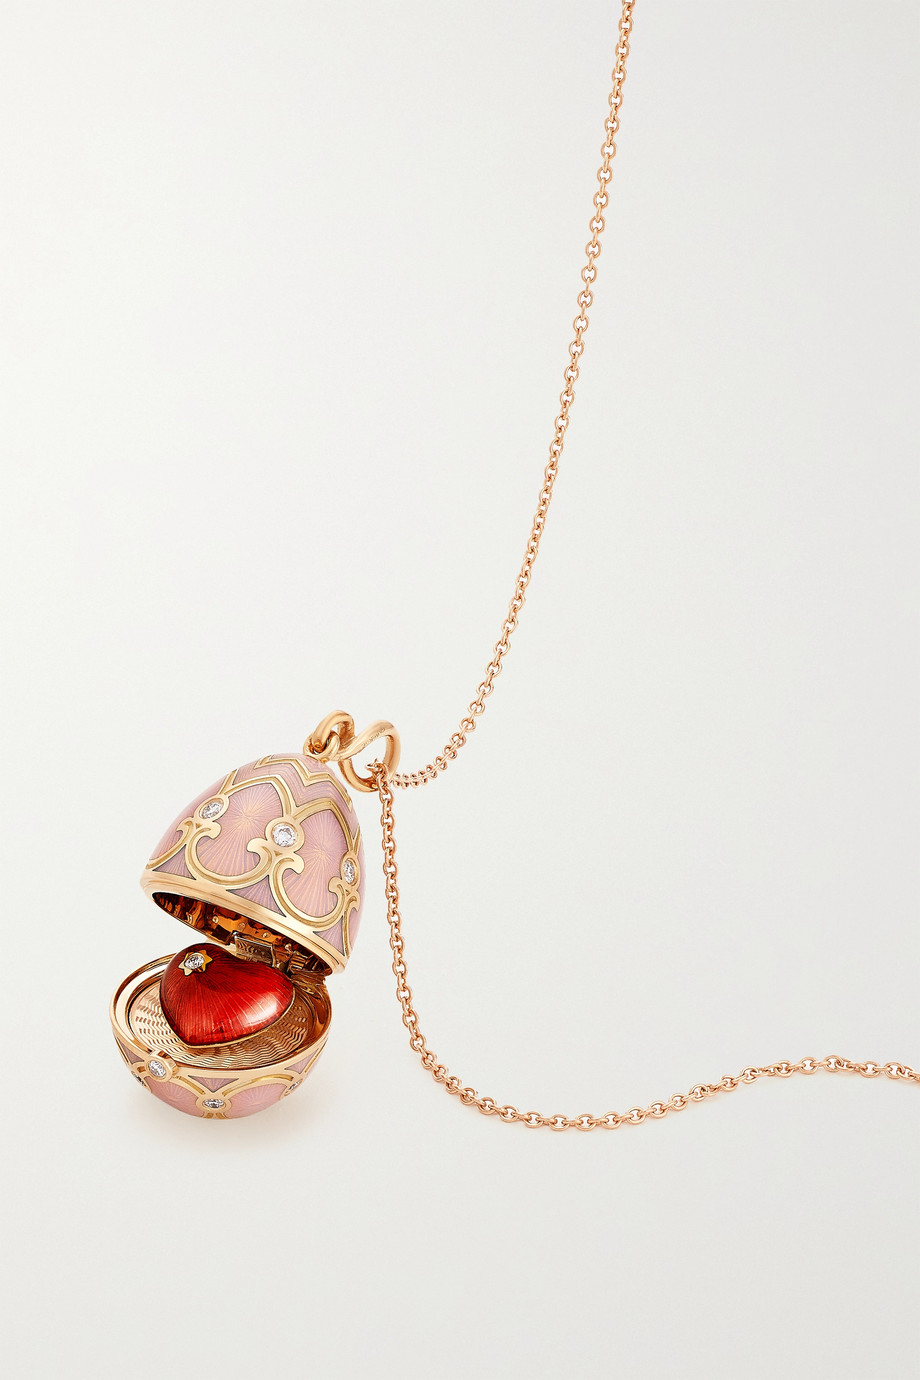 FABERGÉ Heritage 18-karat rose gold, enamel and diamond necklace